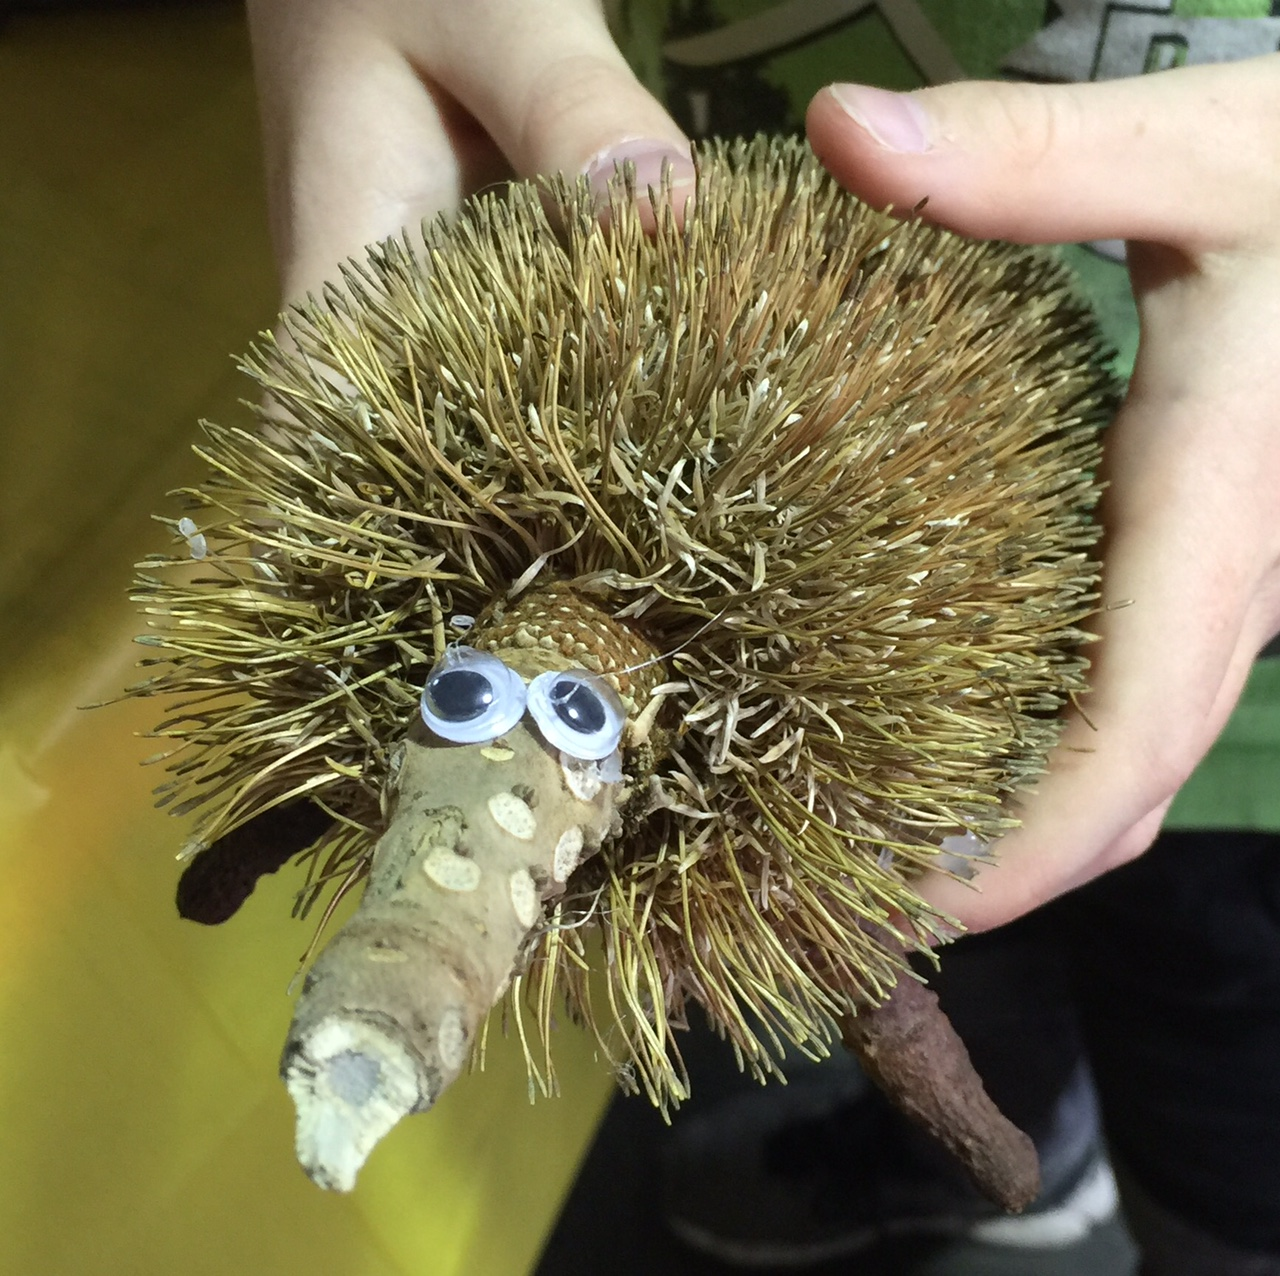 kids-nature-craft-echidna-banksia-seedpod-critter